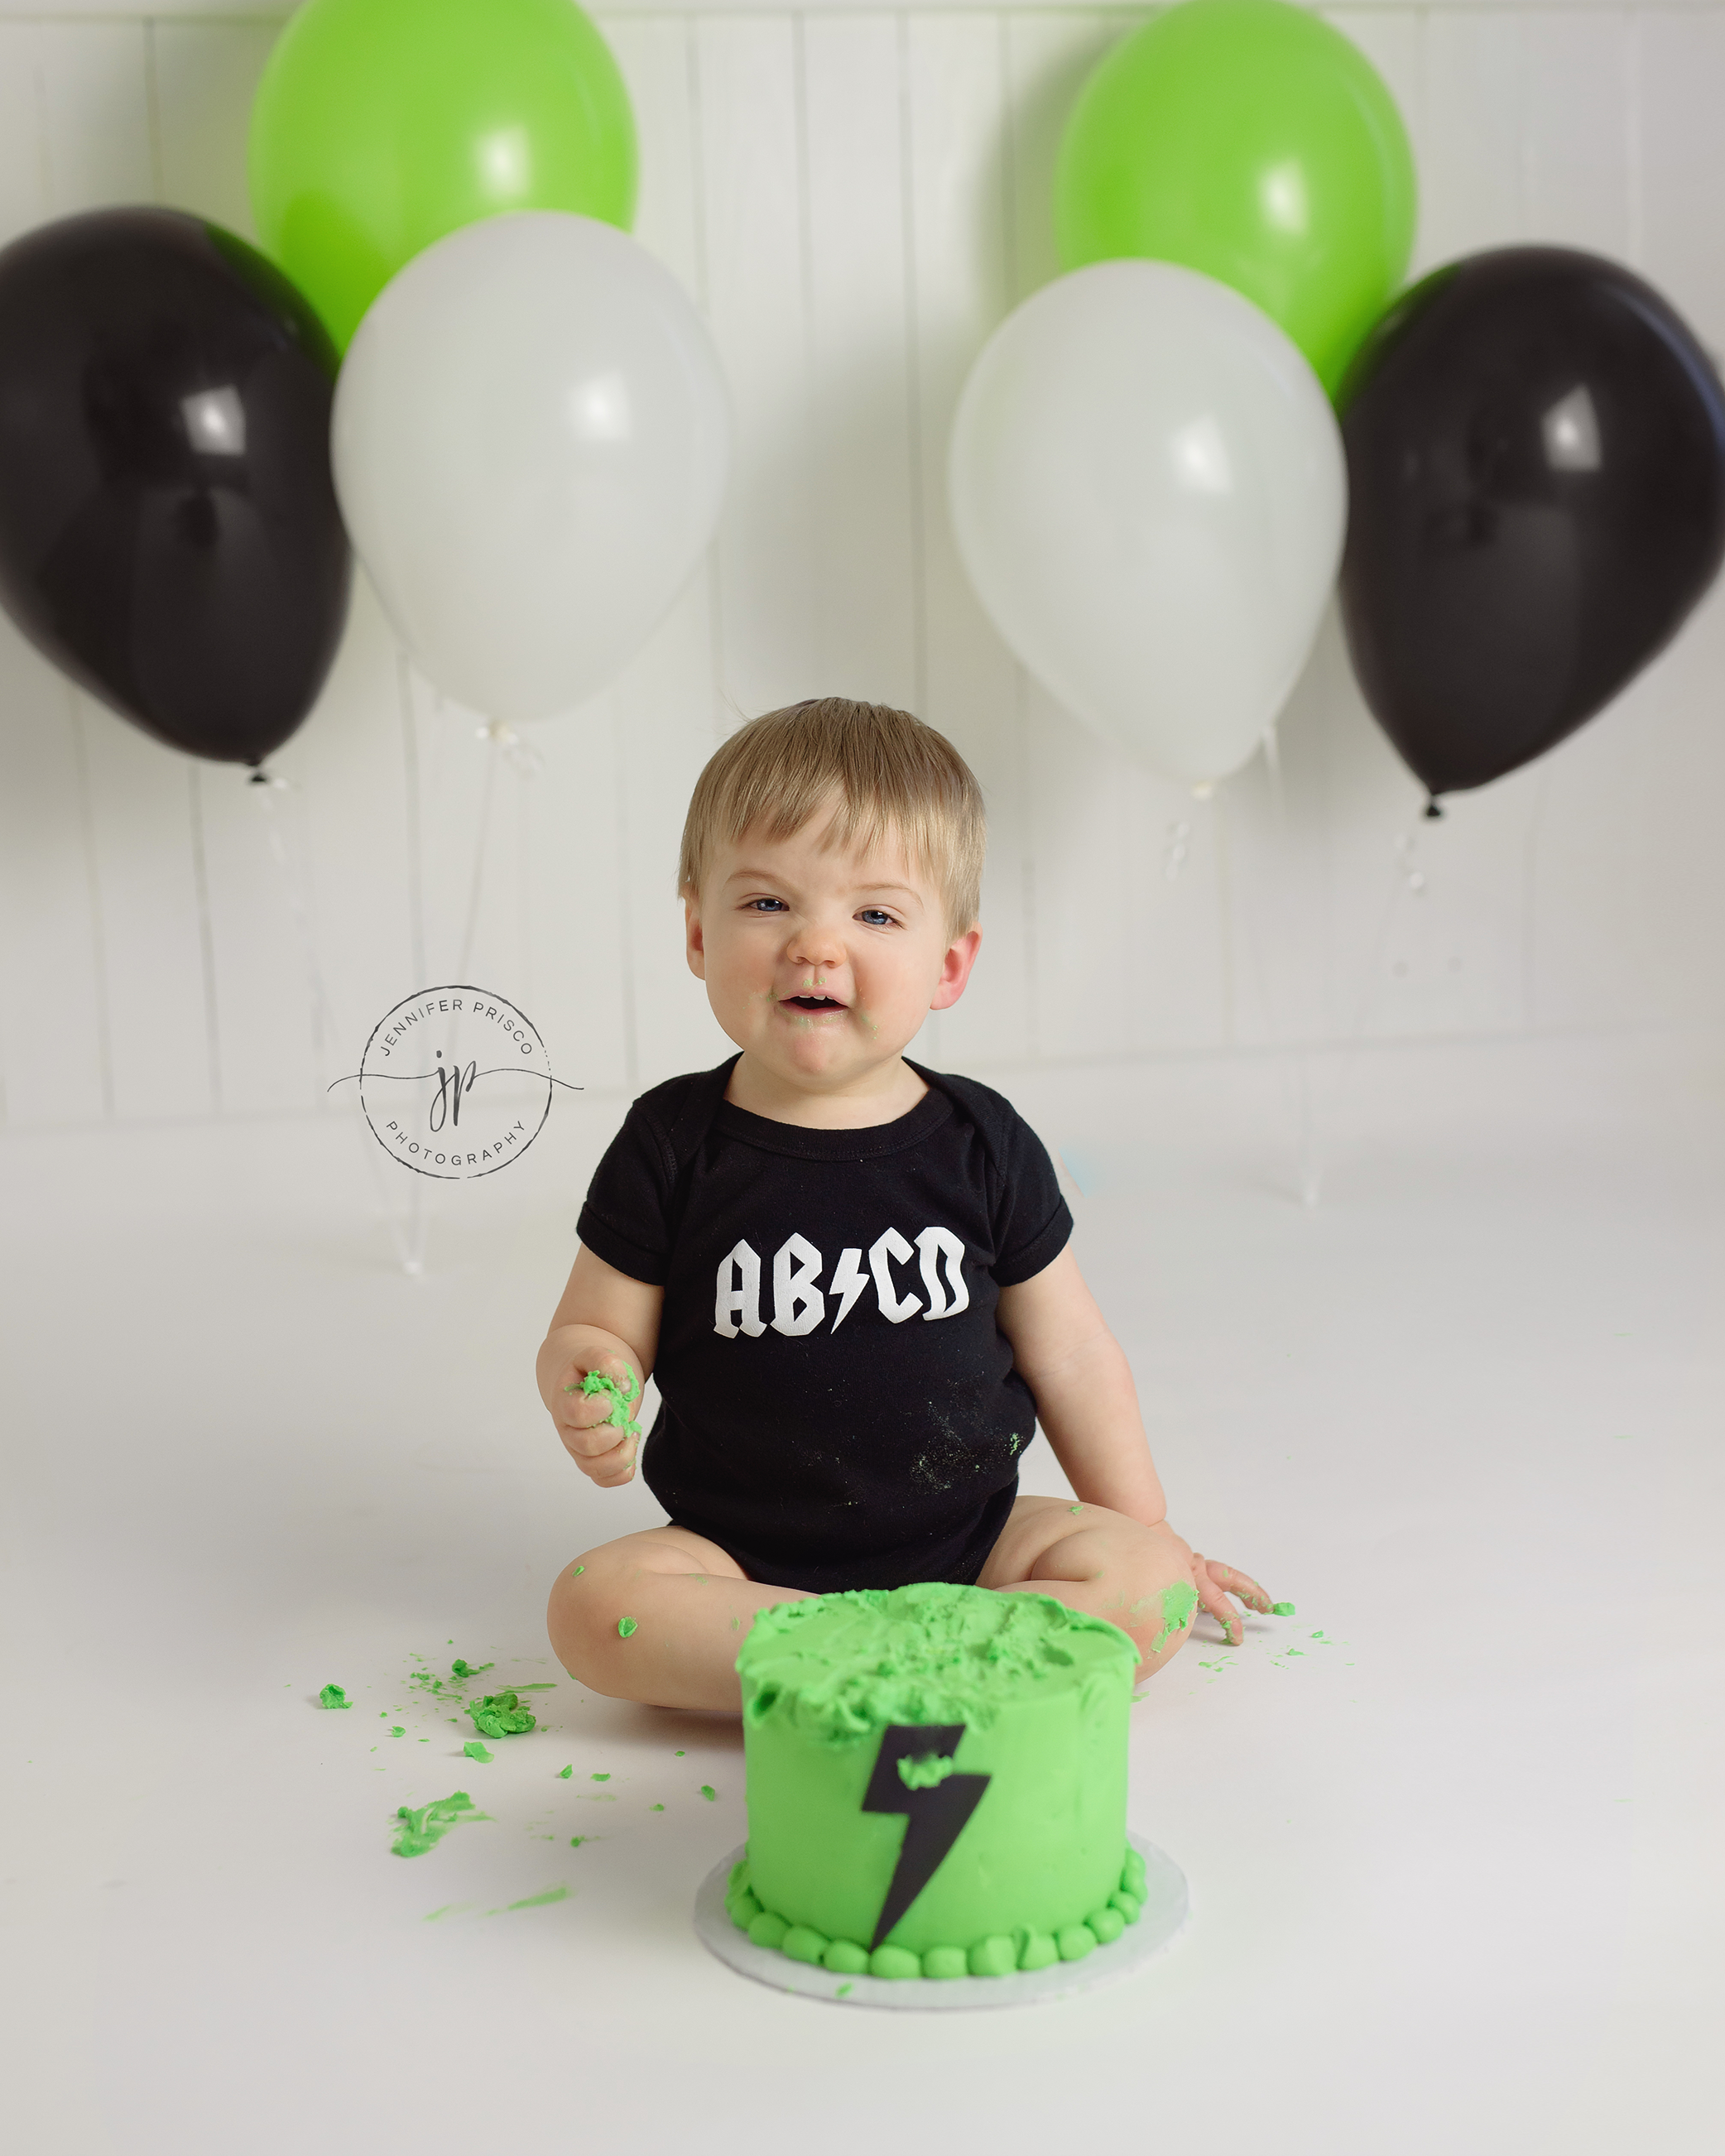 Rock star birthday outfit boys guitar 1st birthday outfit punk baby clothes rock star cake smash outfit boys 1st birthday outfit